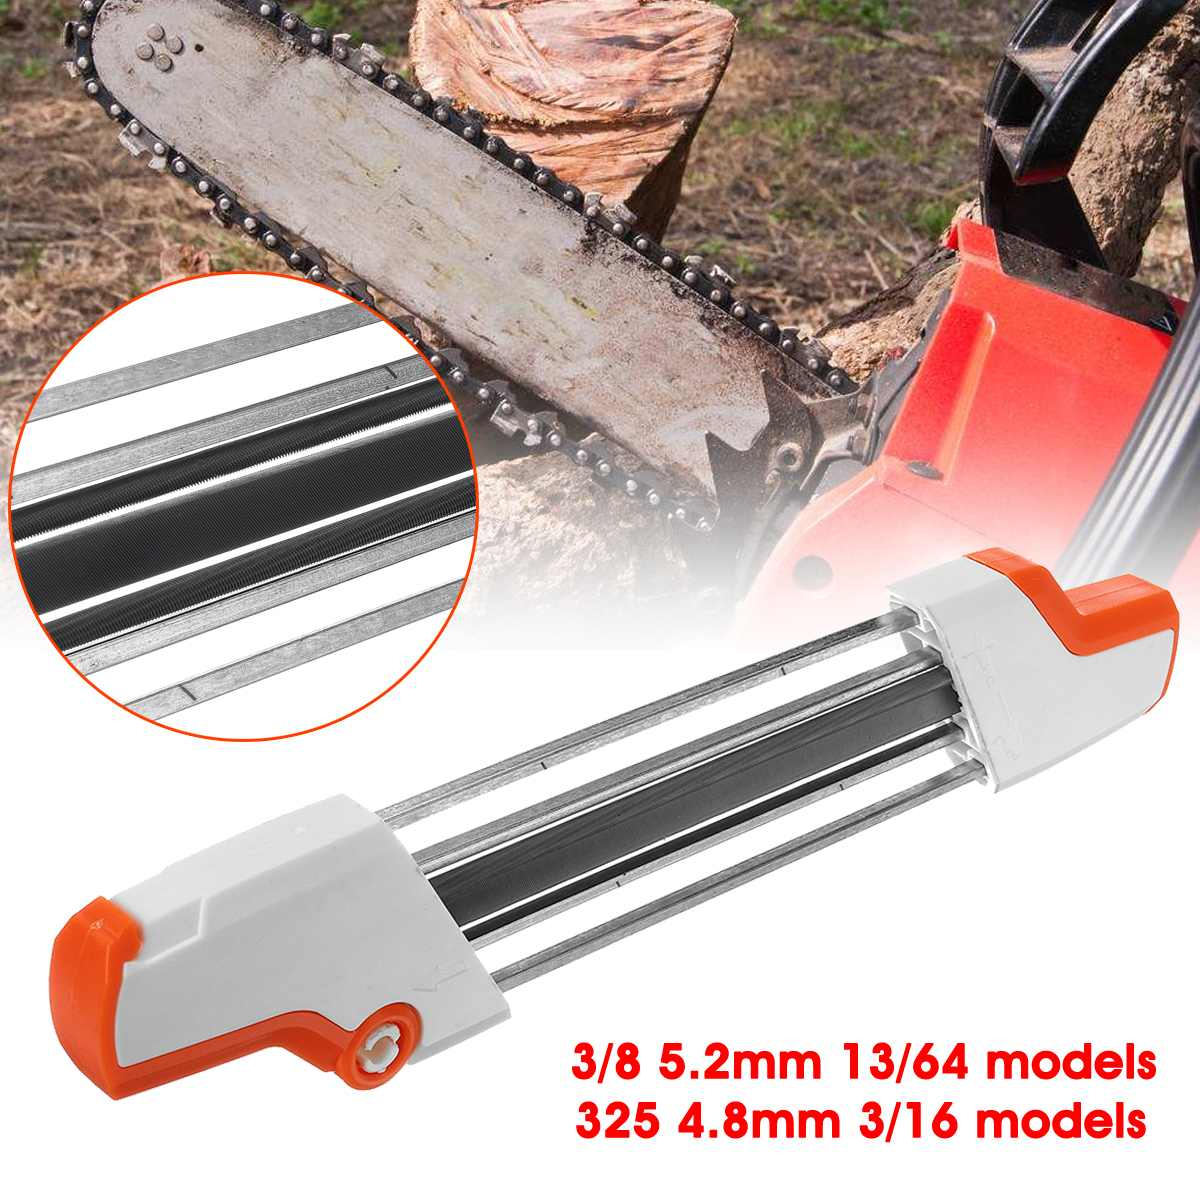 Doersupp 3/8 5.2mm 13/64 & 325 4.8mm 3/16 & 4.0mm Models 2 IN 1 Chainsaw Chain Easy File Sharpener Chain Whetstone Grinding Tool